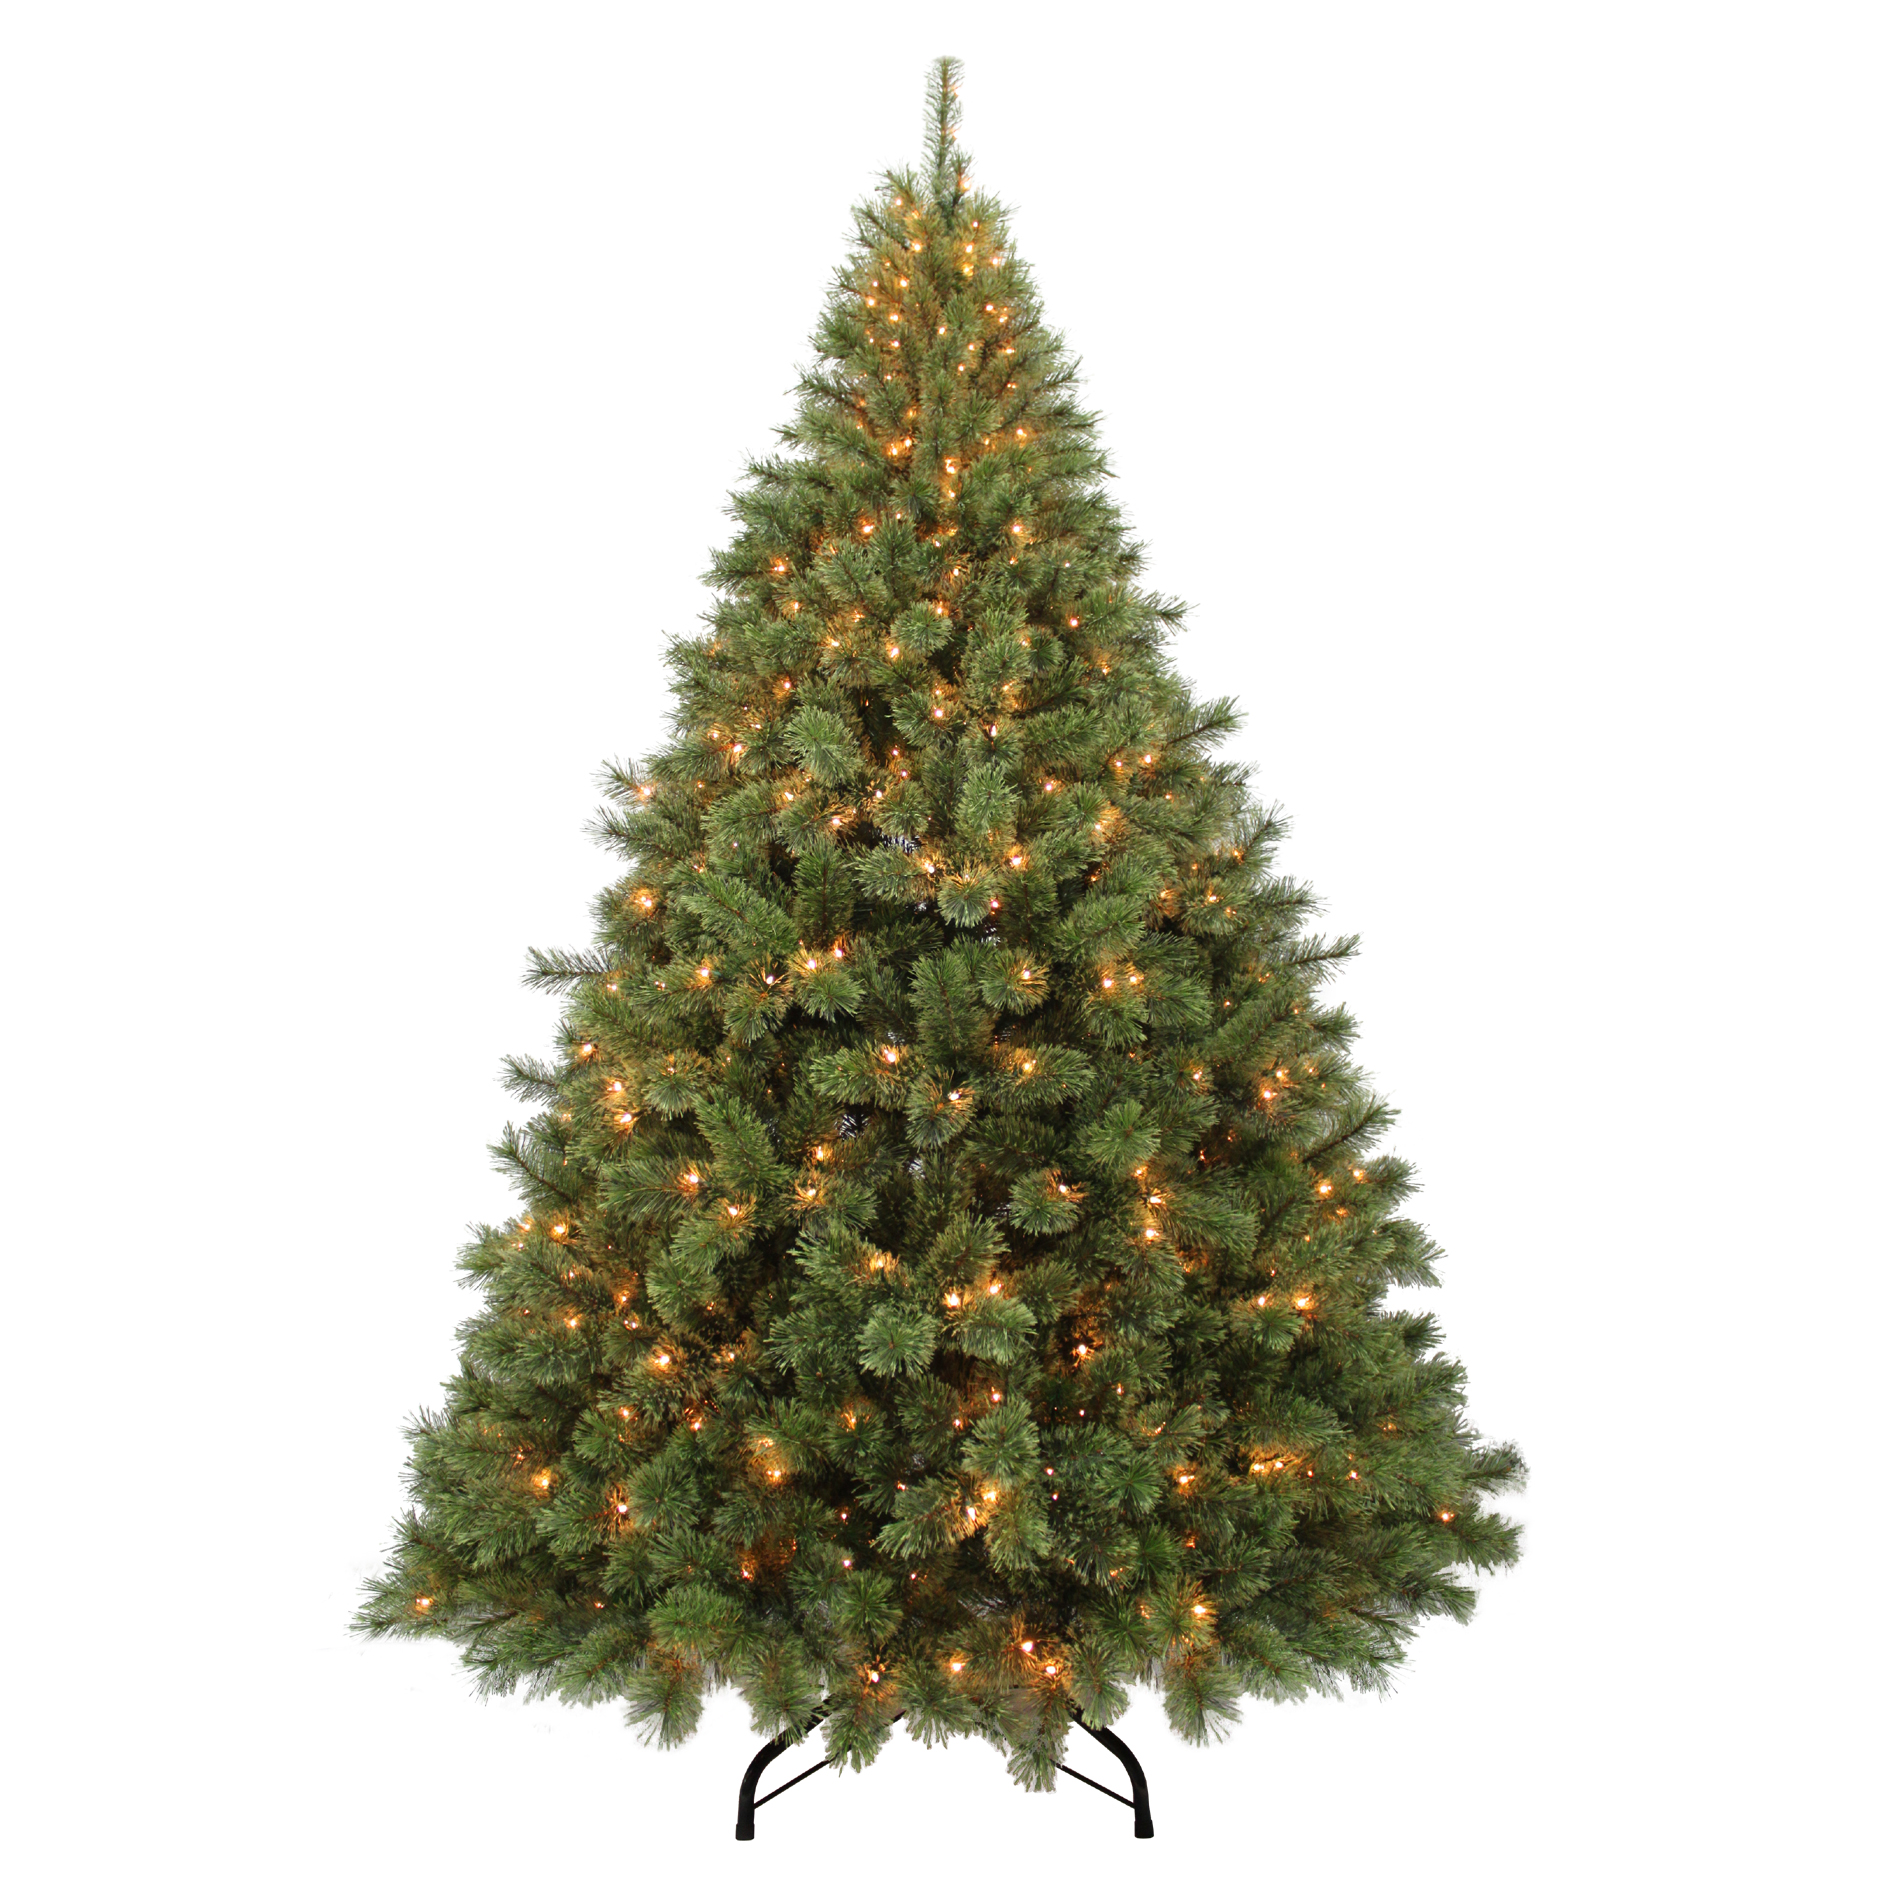 Beautiful Christmas Tree Sears Part - 11: 9ft Westchester Deluxe Cashmere Pine